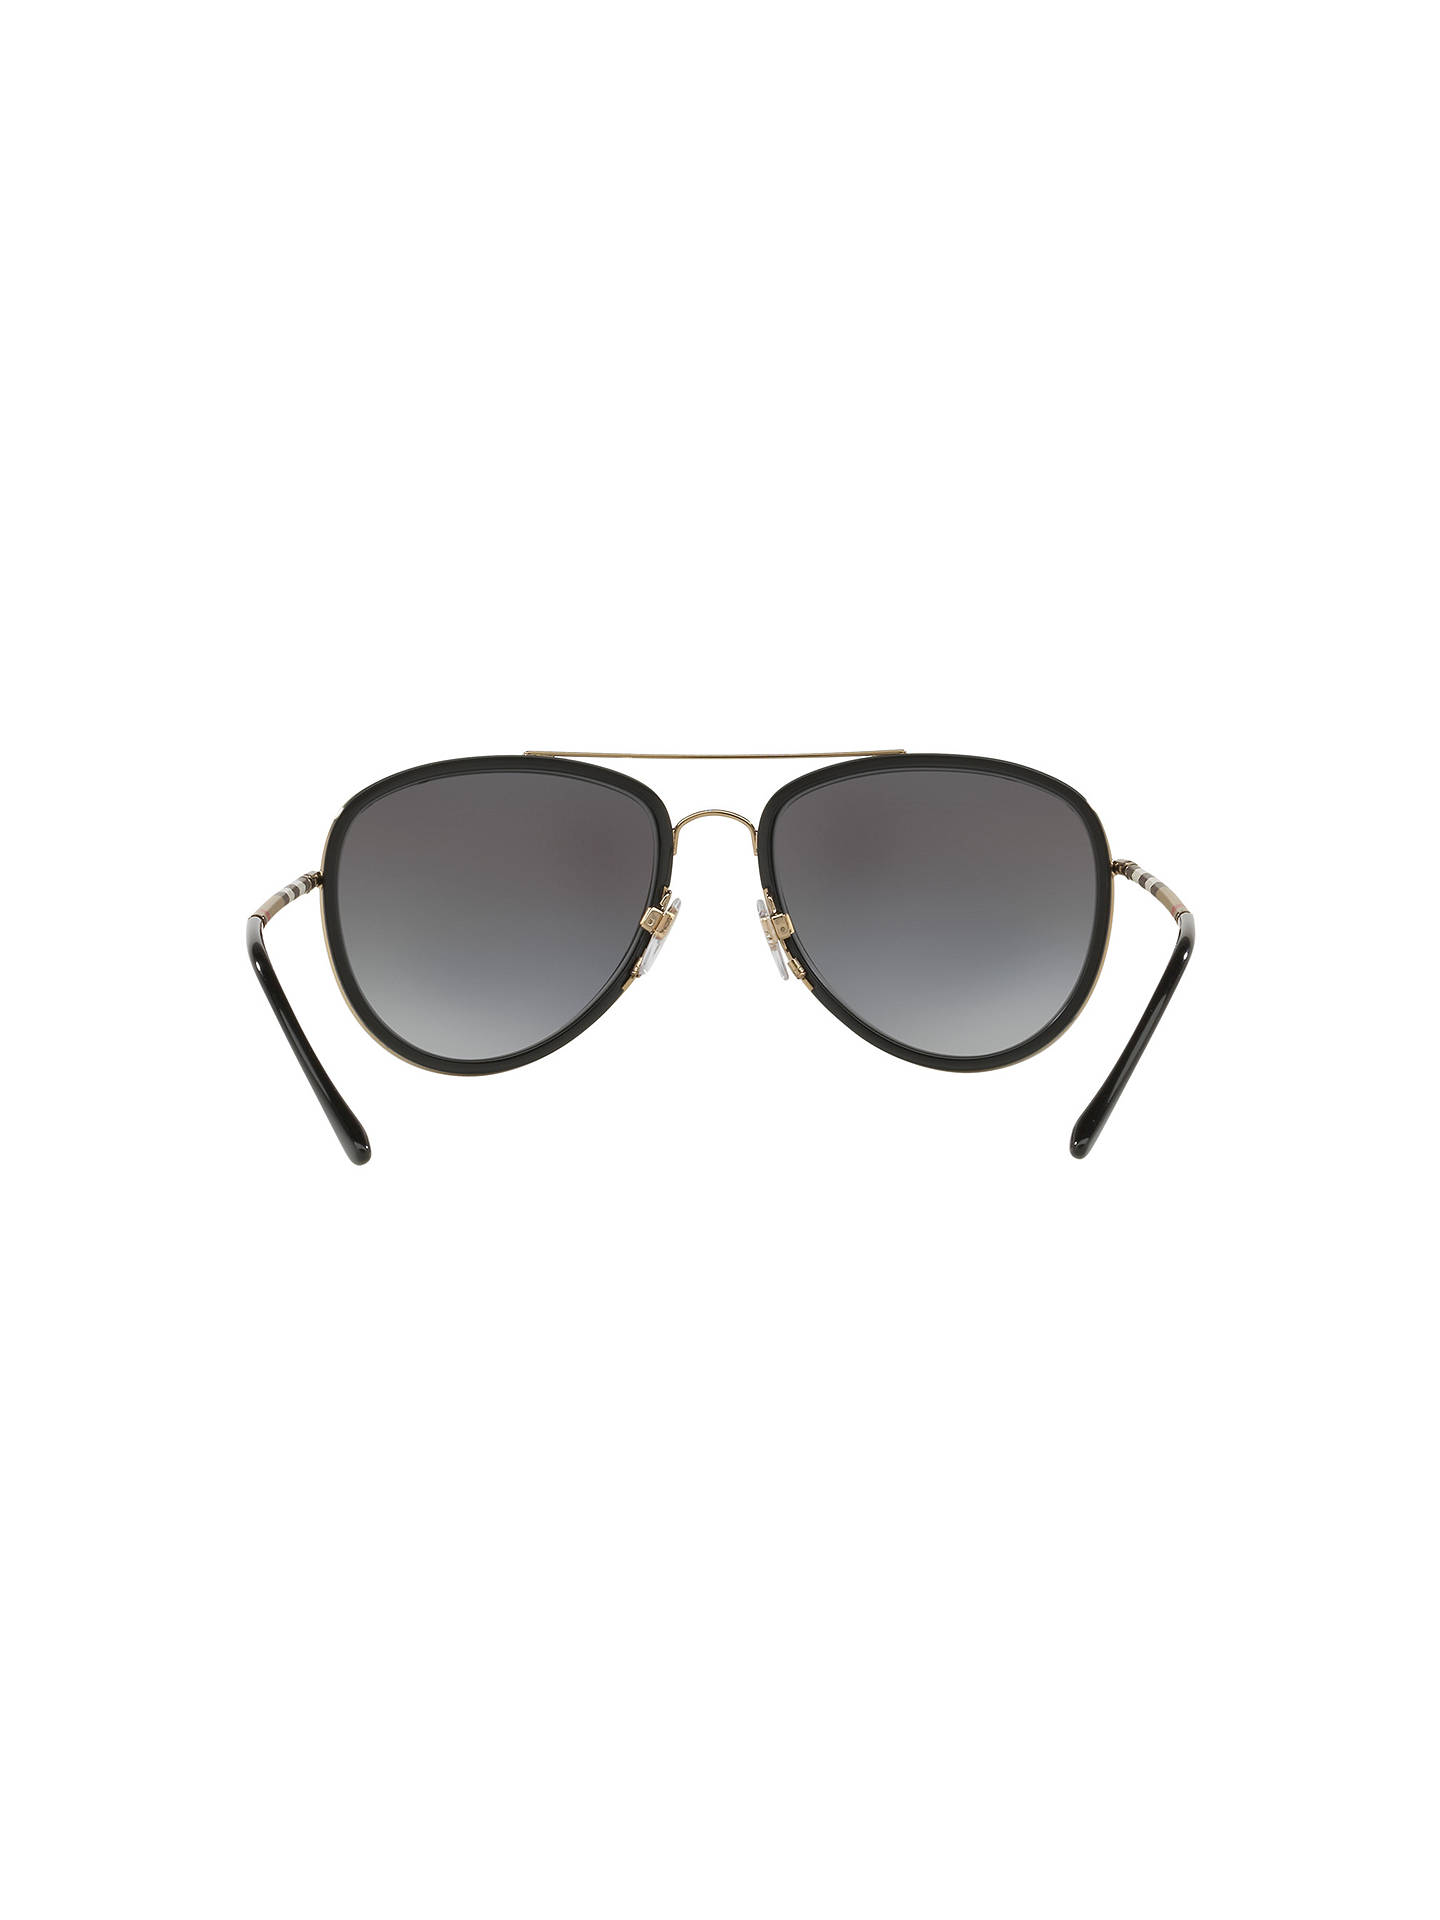 72537eed769 ... BuyBurberry BE3090 Polarised Aviator Sunglasses